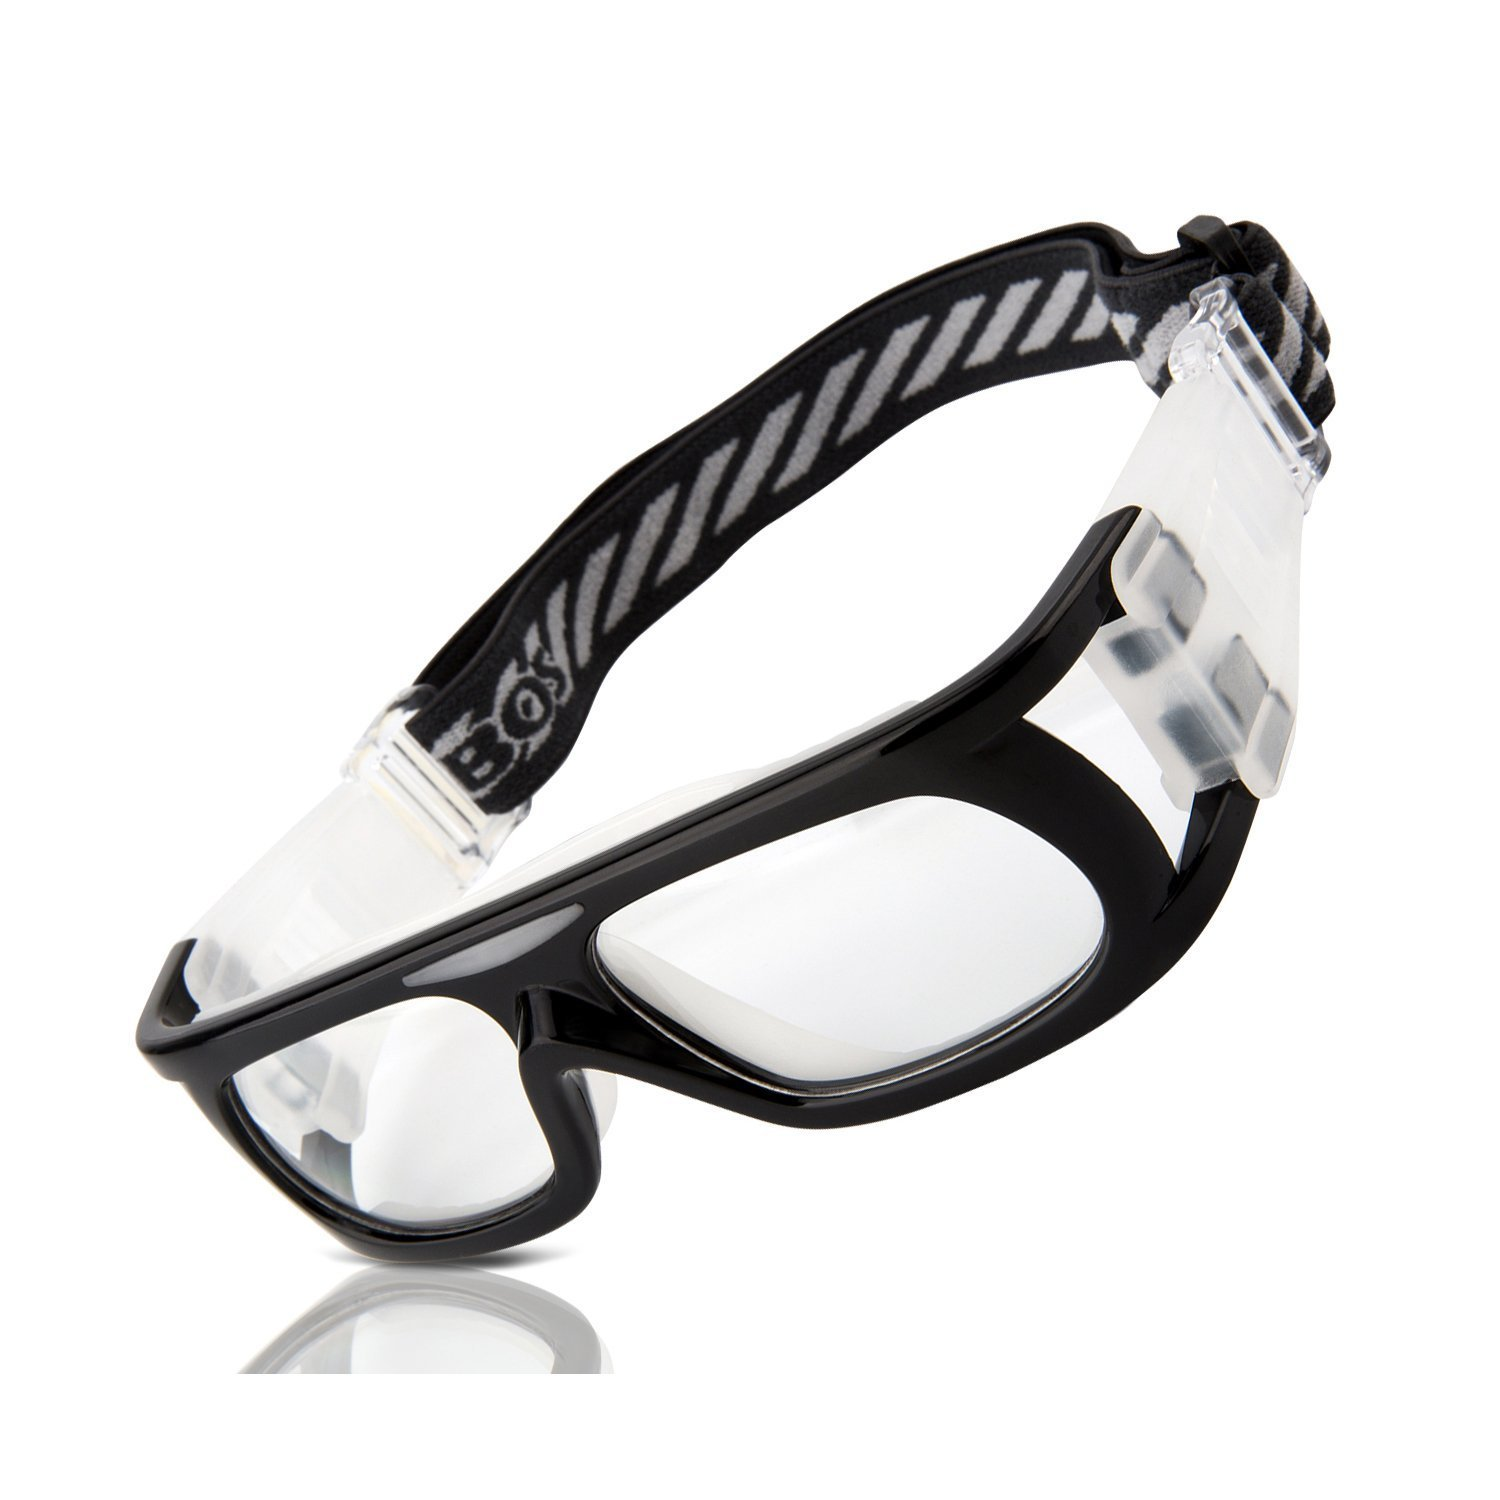 RIVBOS® Sports Goggles Safety Protective Glasses with Strap and Portable Case for Basketball Football Hockey Rugby Baseball Soccer Suitable for Men Women Kids Children Prescription Available RB1810